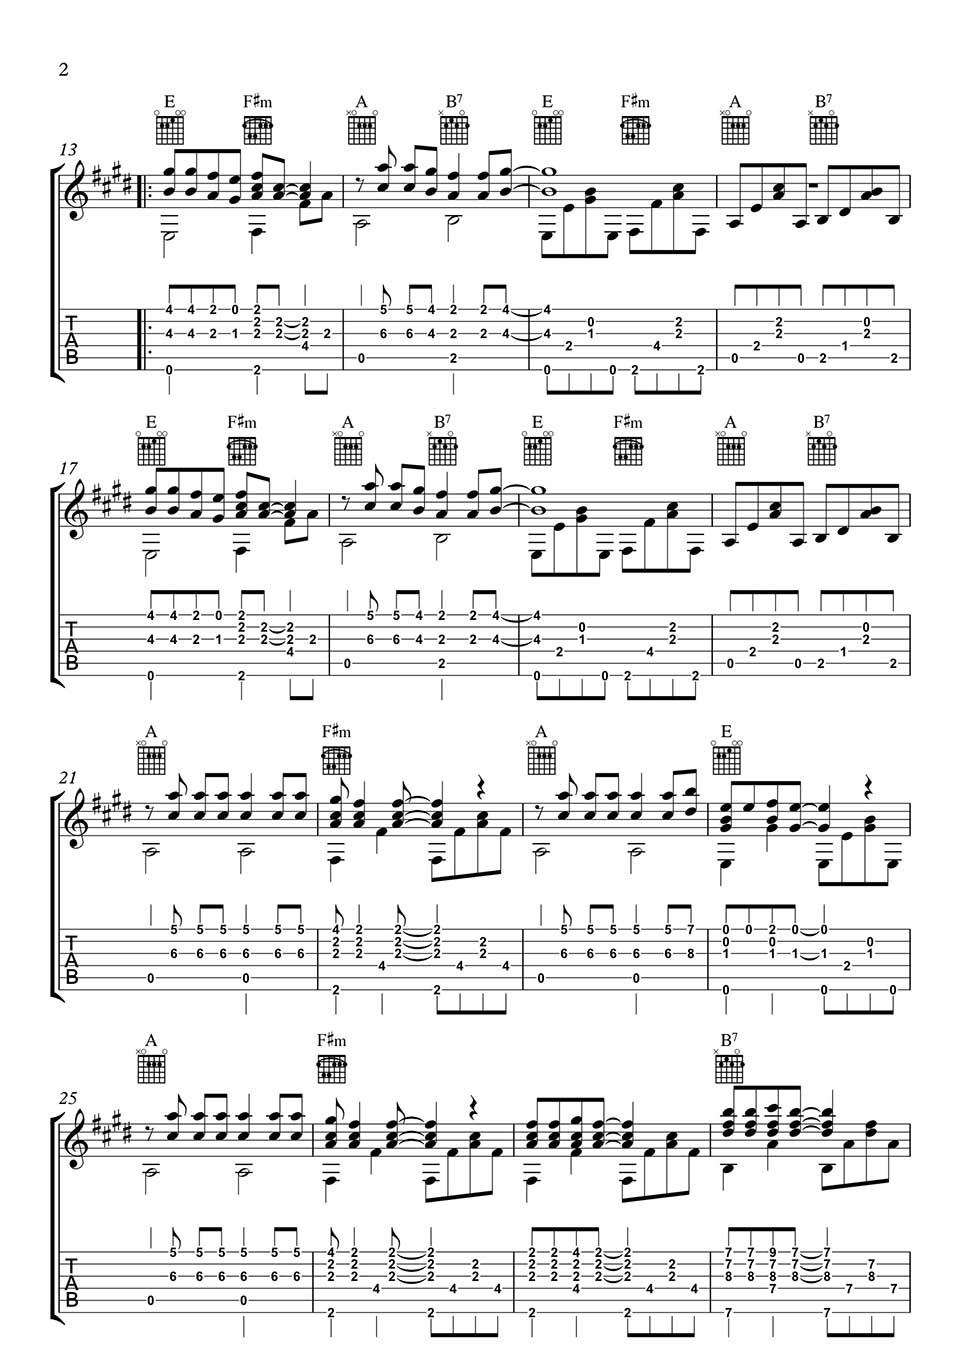 Hallelujah chords on guitar